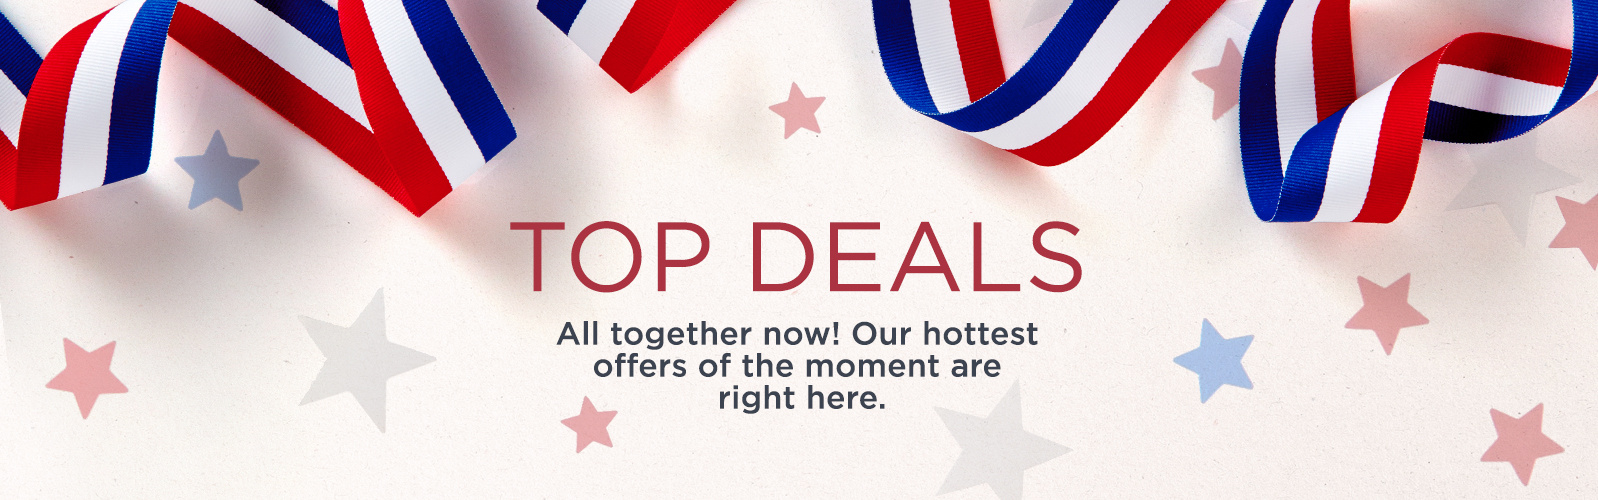 Top Deals. All together now! Our hottest offers of the moment are right here.